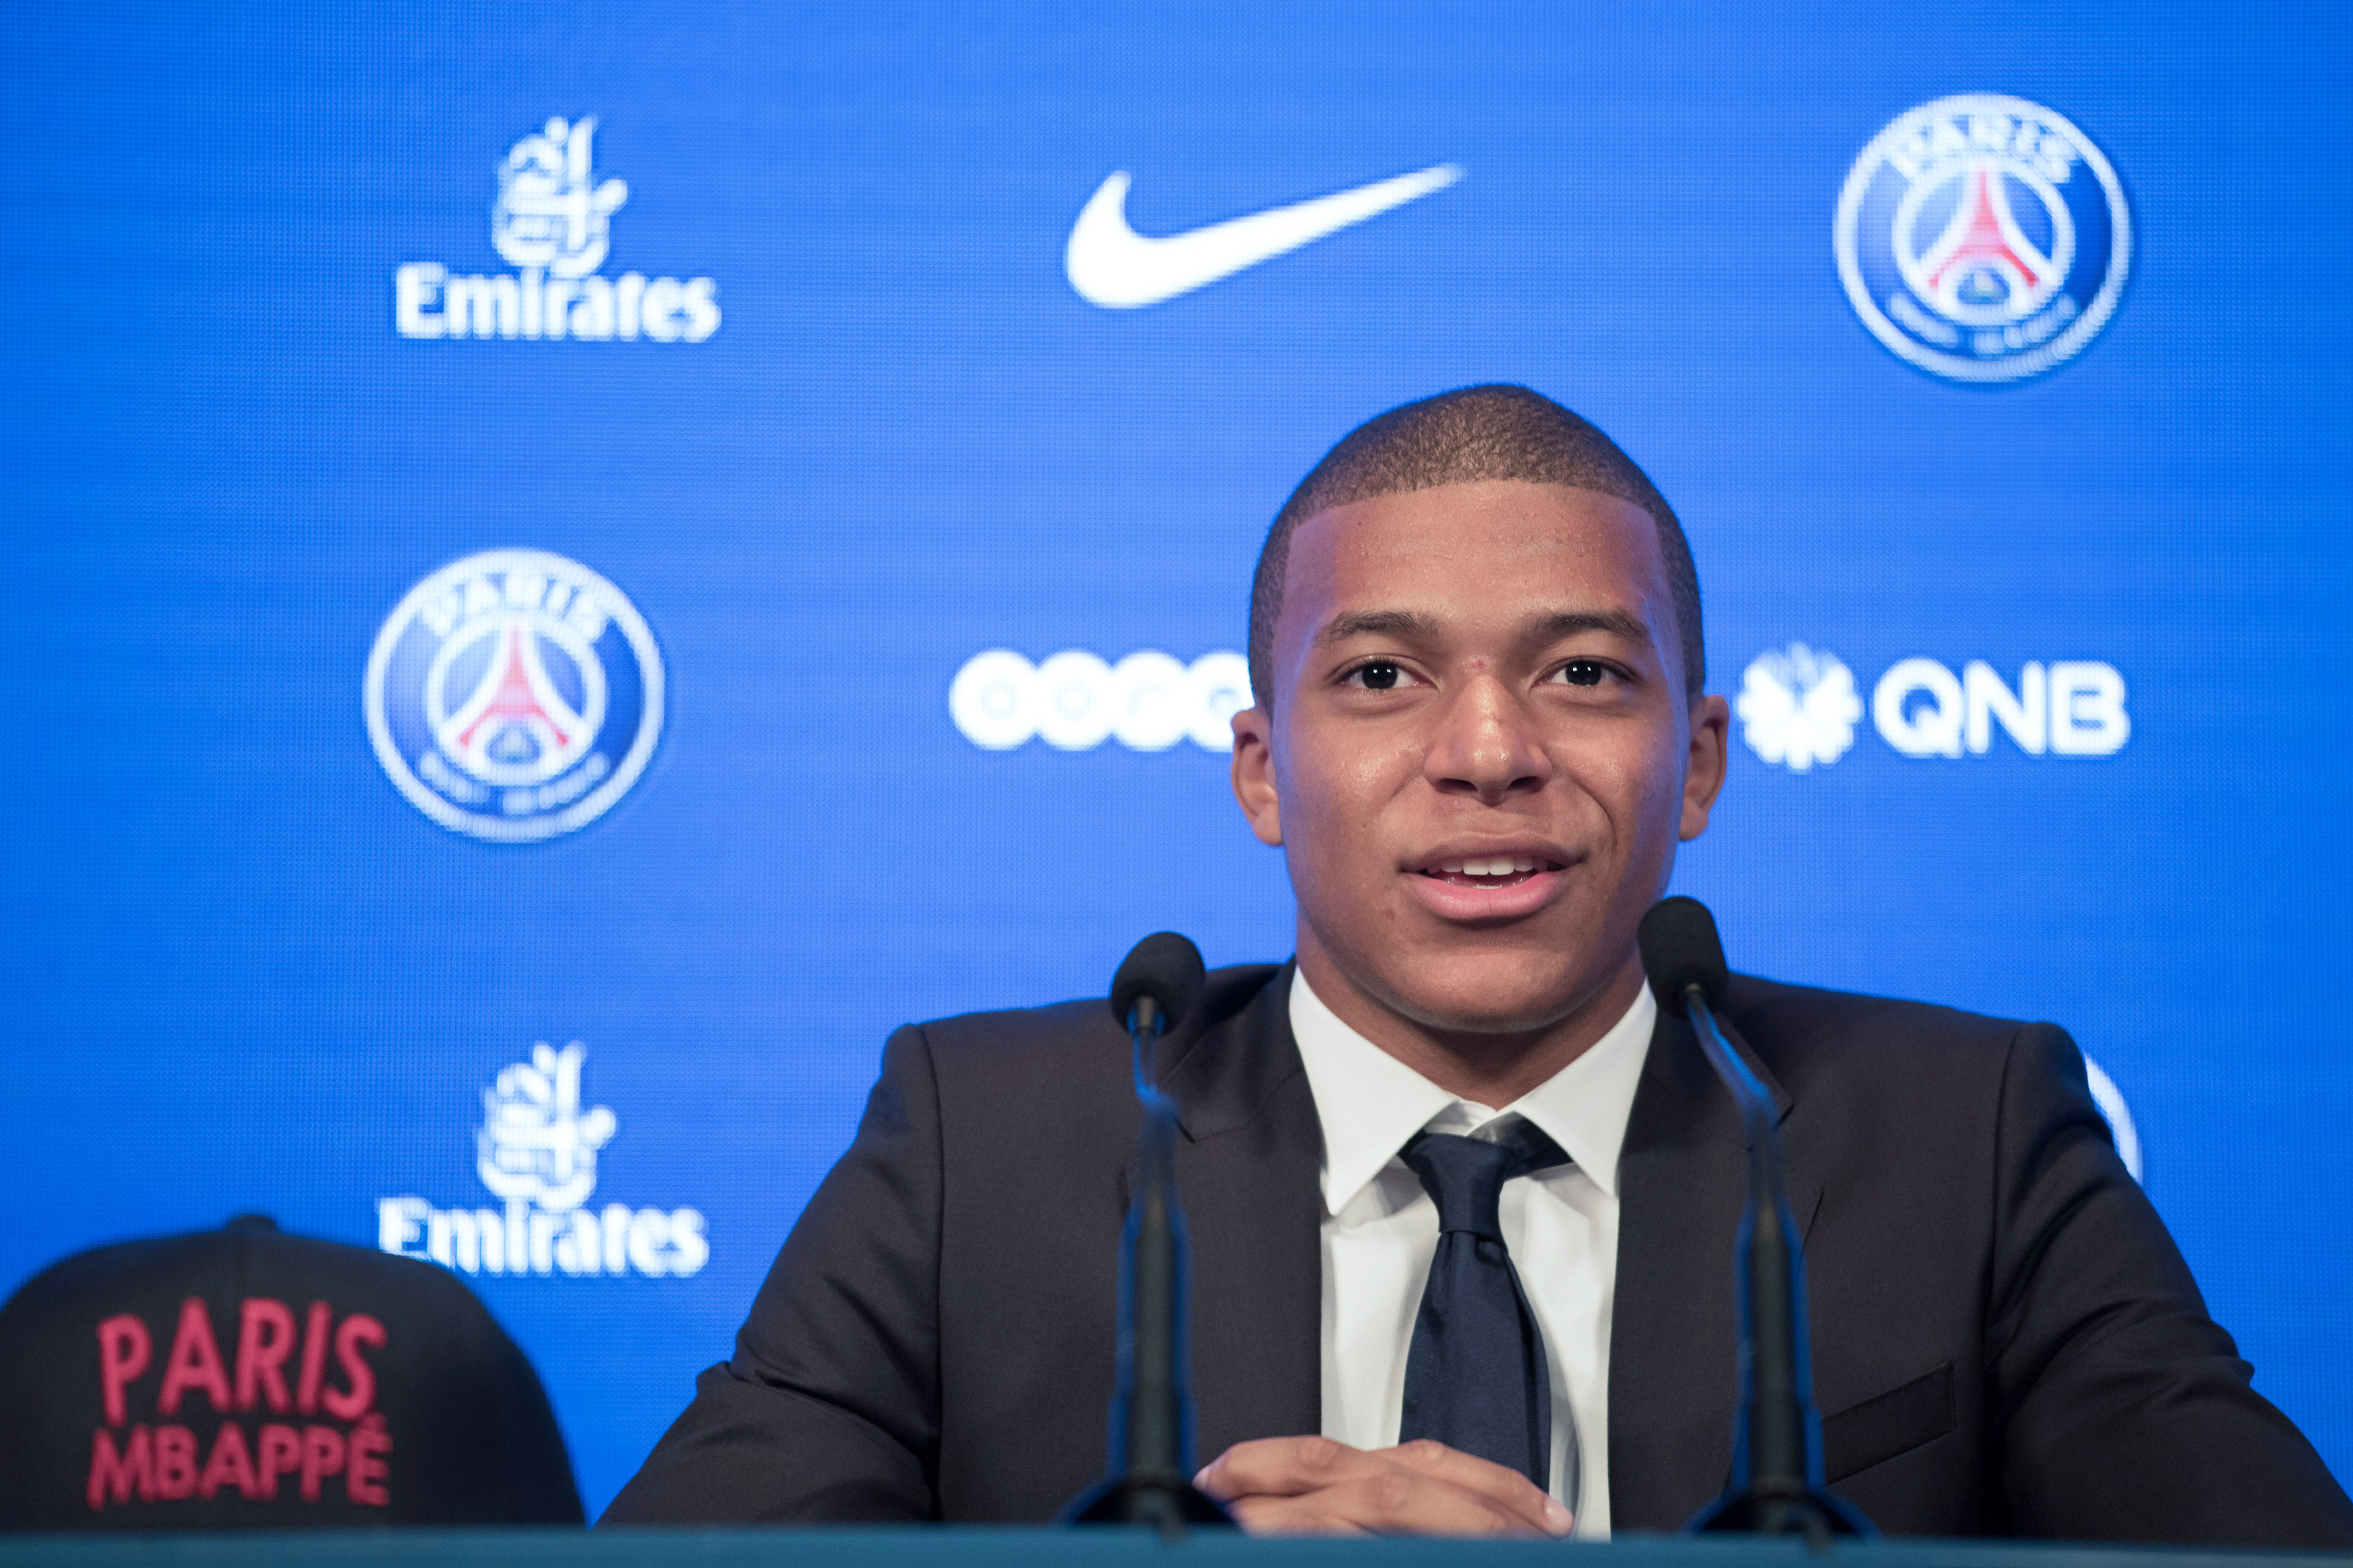 Mbappe scores on PSG debut